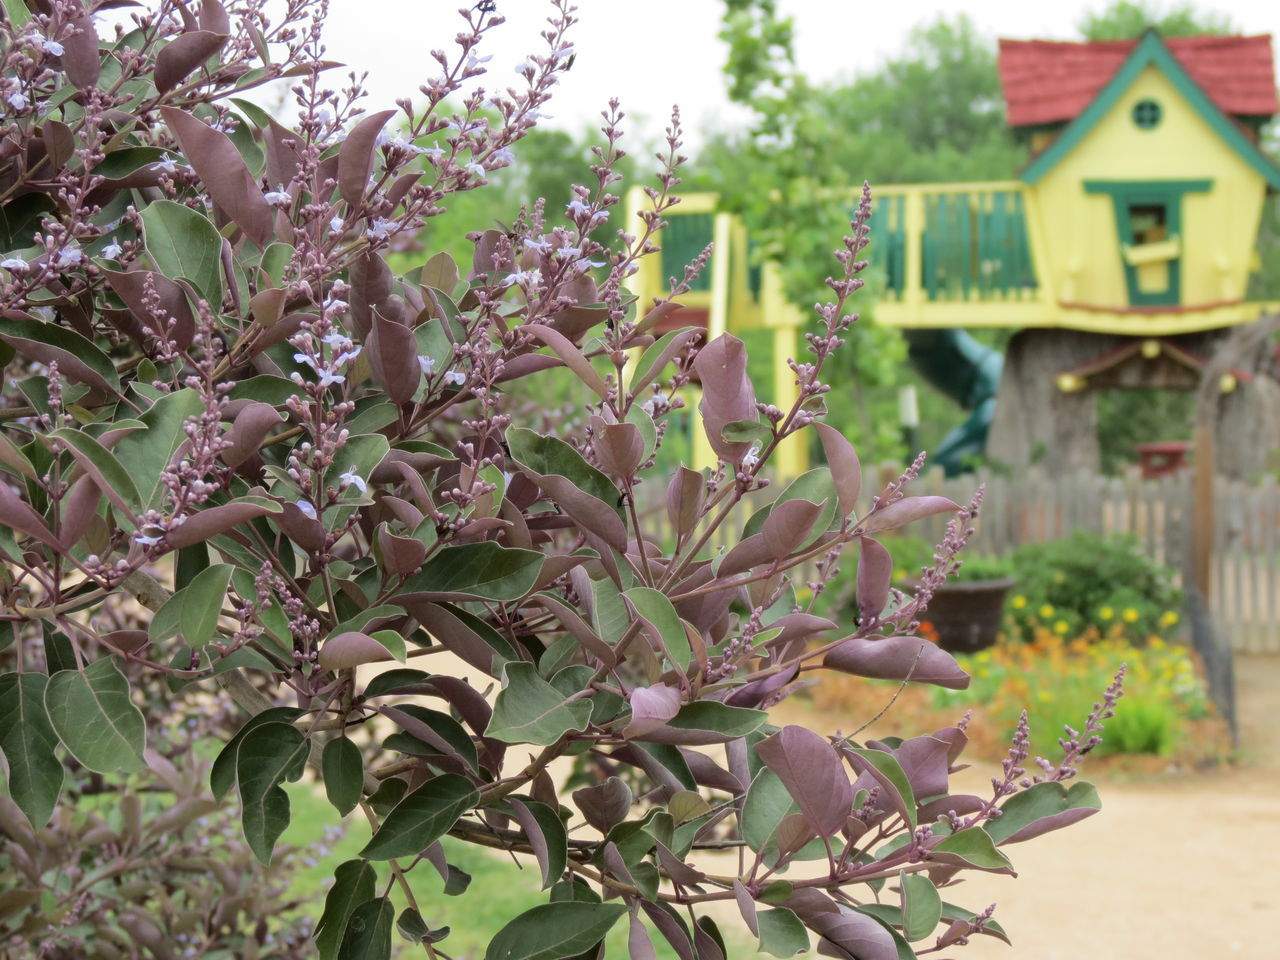 Animal Themes Architecture Beauty In Nature Building Exterior Built Structure Childrens Play Close-up Day Flower Growth Hobbies Nature No People Outdoors Plant Plant Play Structure Tree Vitex Agnus Castus